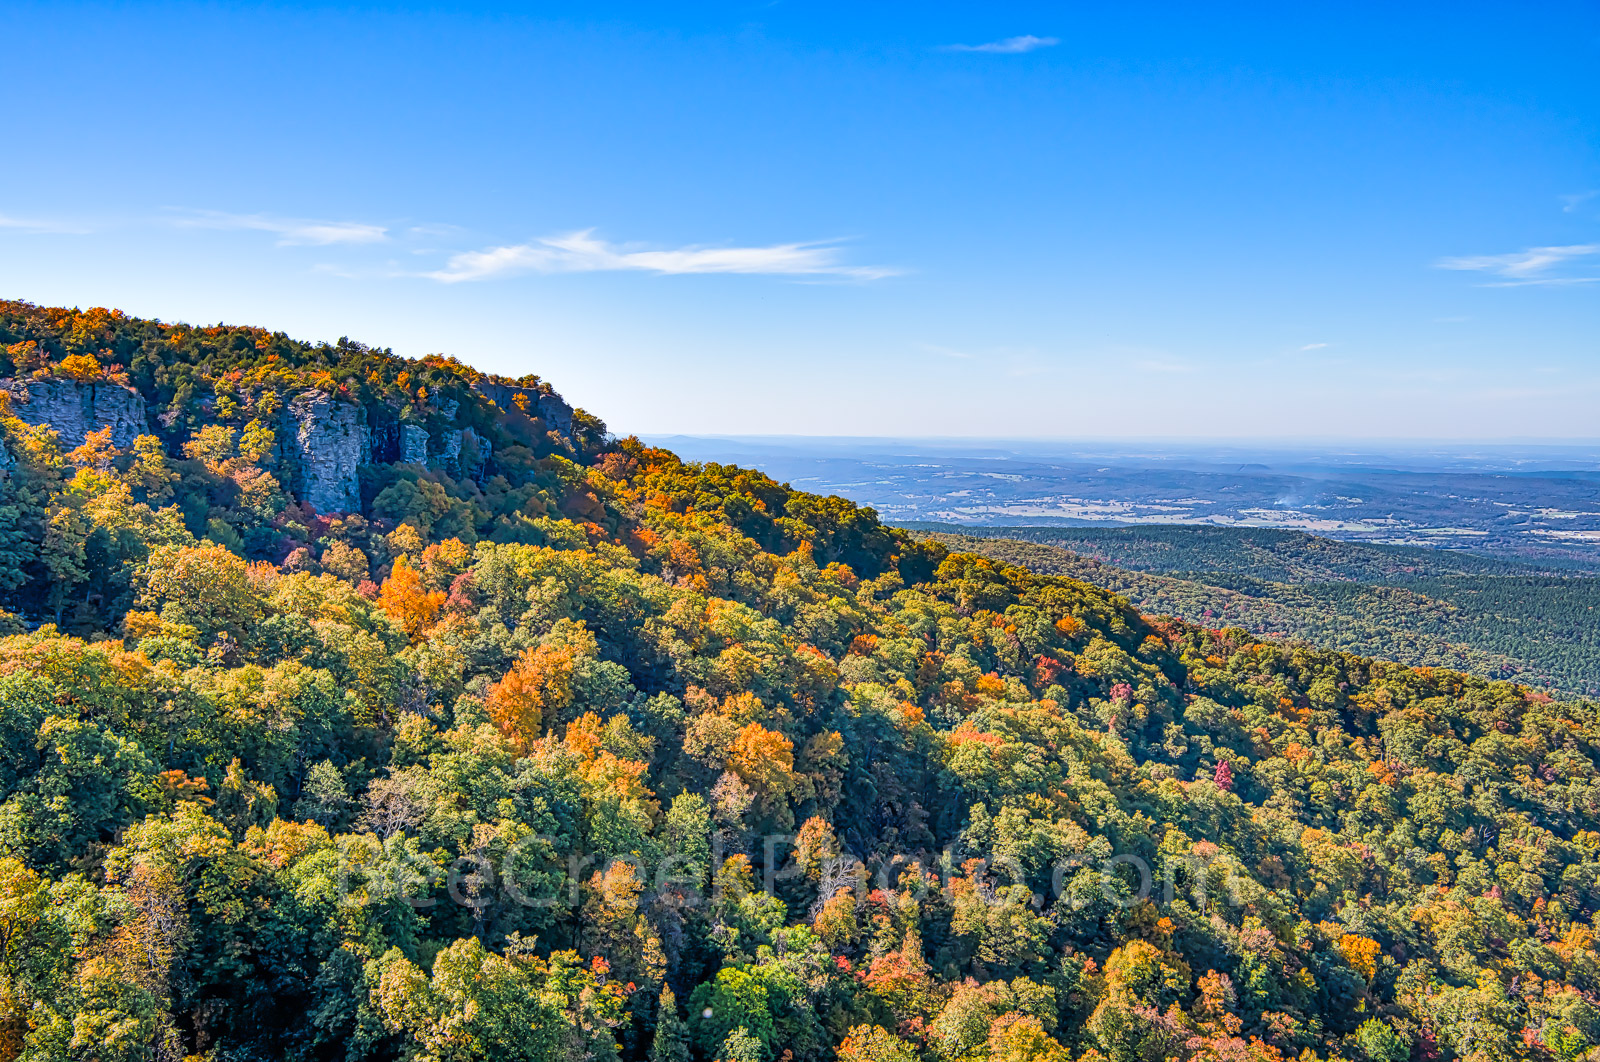 fall, overlook, autumn, october, mountain, color, colorful, orange, reds, green, forest, arkansas, USA, United States, beauty, nature, ozarks, cameron bluff, Ouachita National Forest, fall scenery,, photo